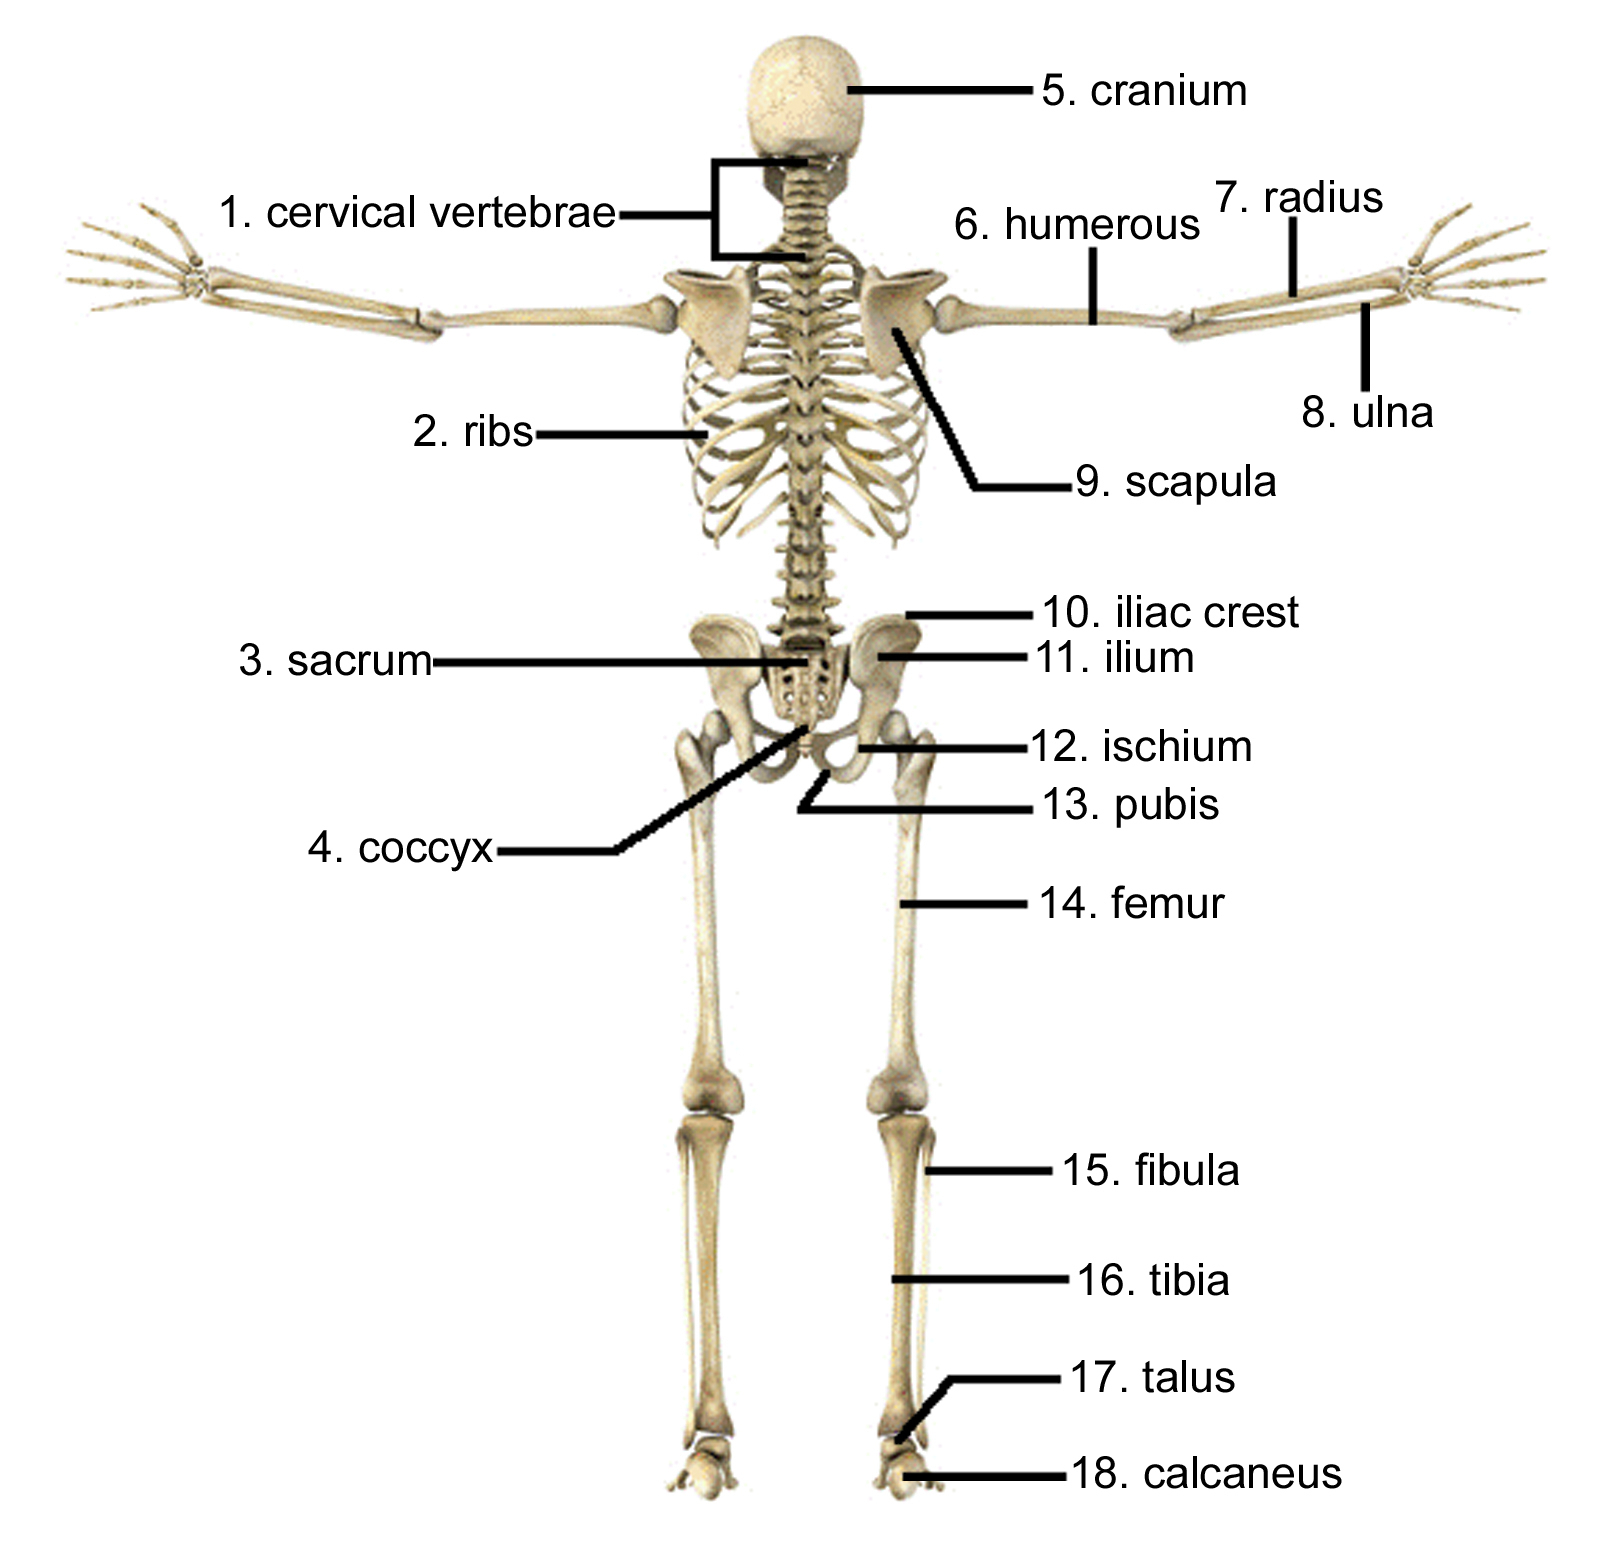 Human skeletal system drawing at getdrawings free for personal 1597x1564 draw and label the human skeleton system pictures skeleton arm ccuart Image collections